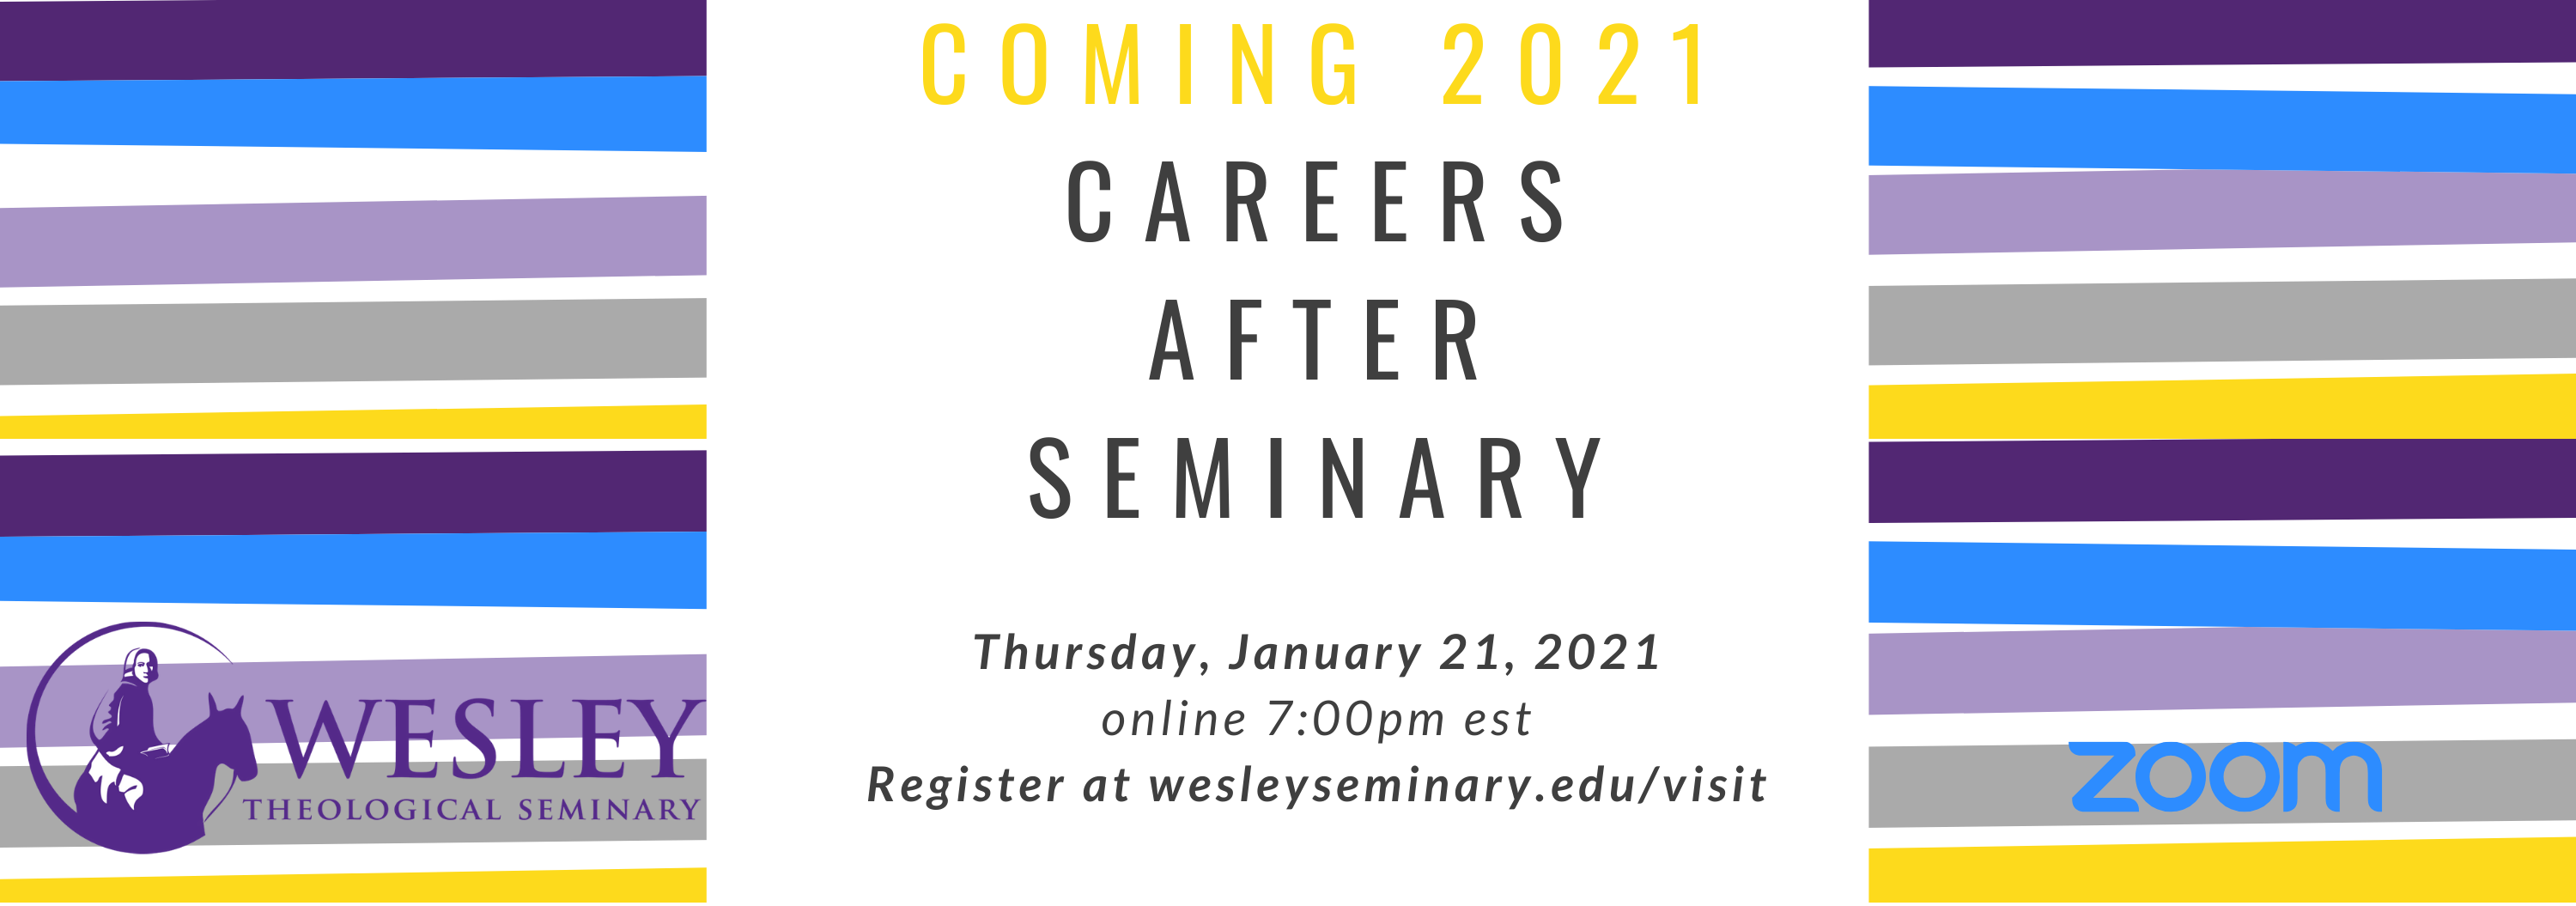 Careers after seminary